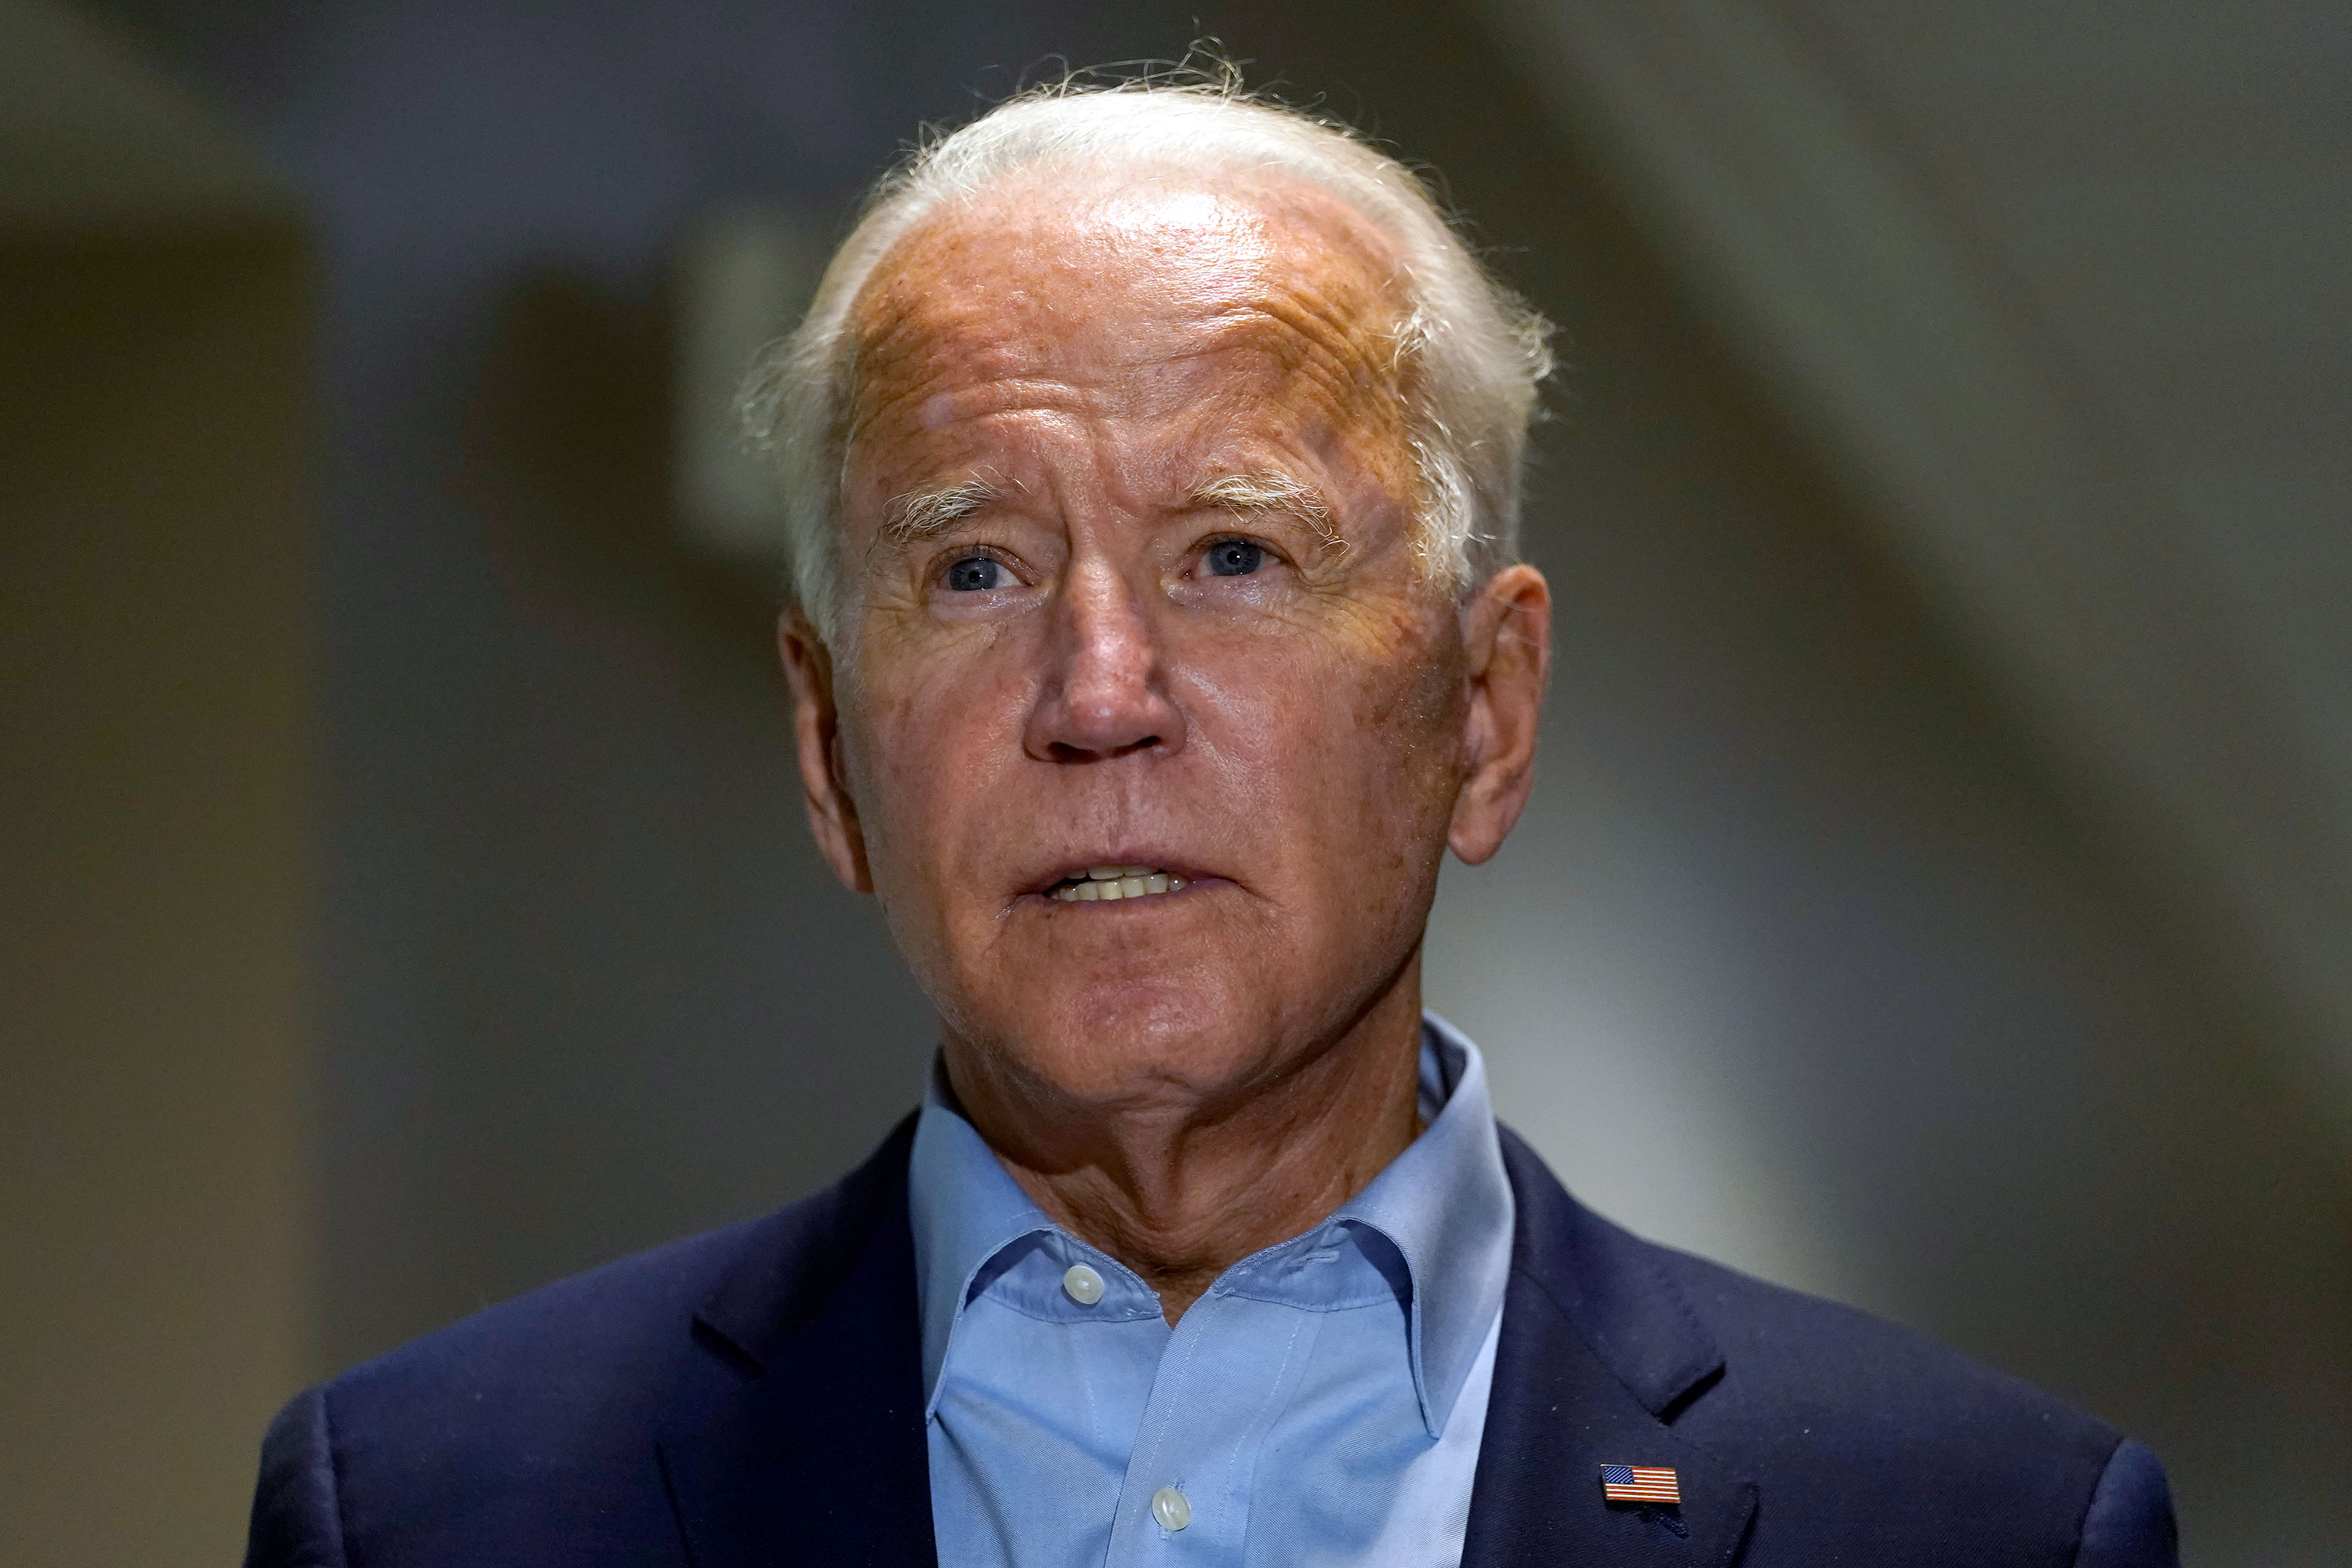 Democratic presidential candidate Joe Biden speaks about the death of Supreme Court Justice Ruth Bader Ginsburg on September 18 in New Castle, Delaware.